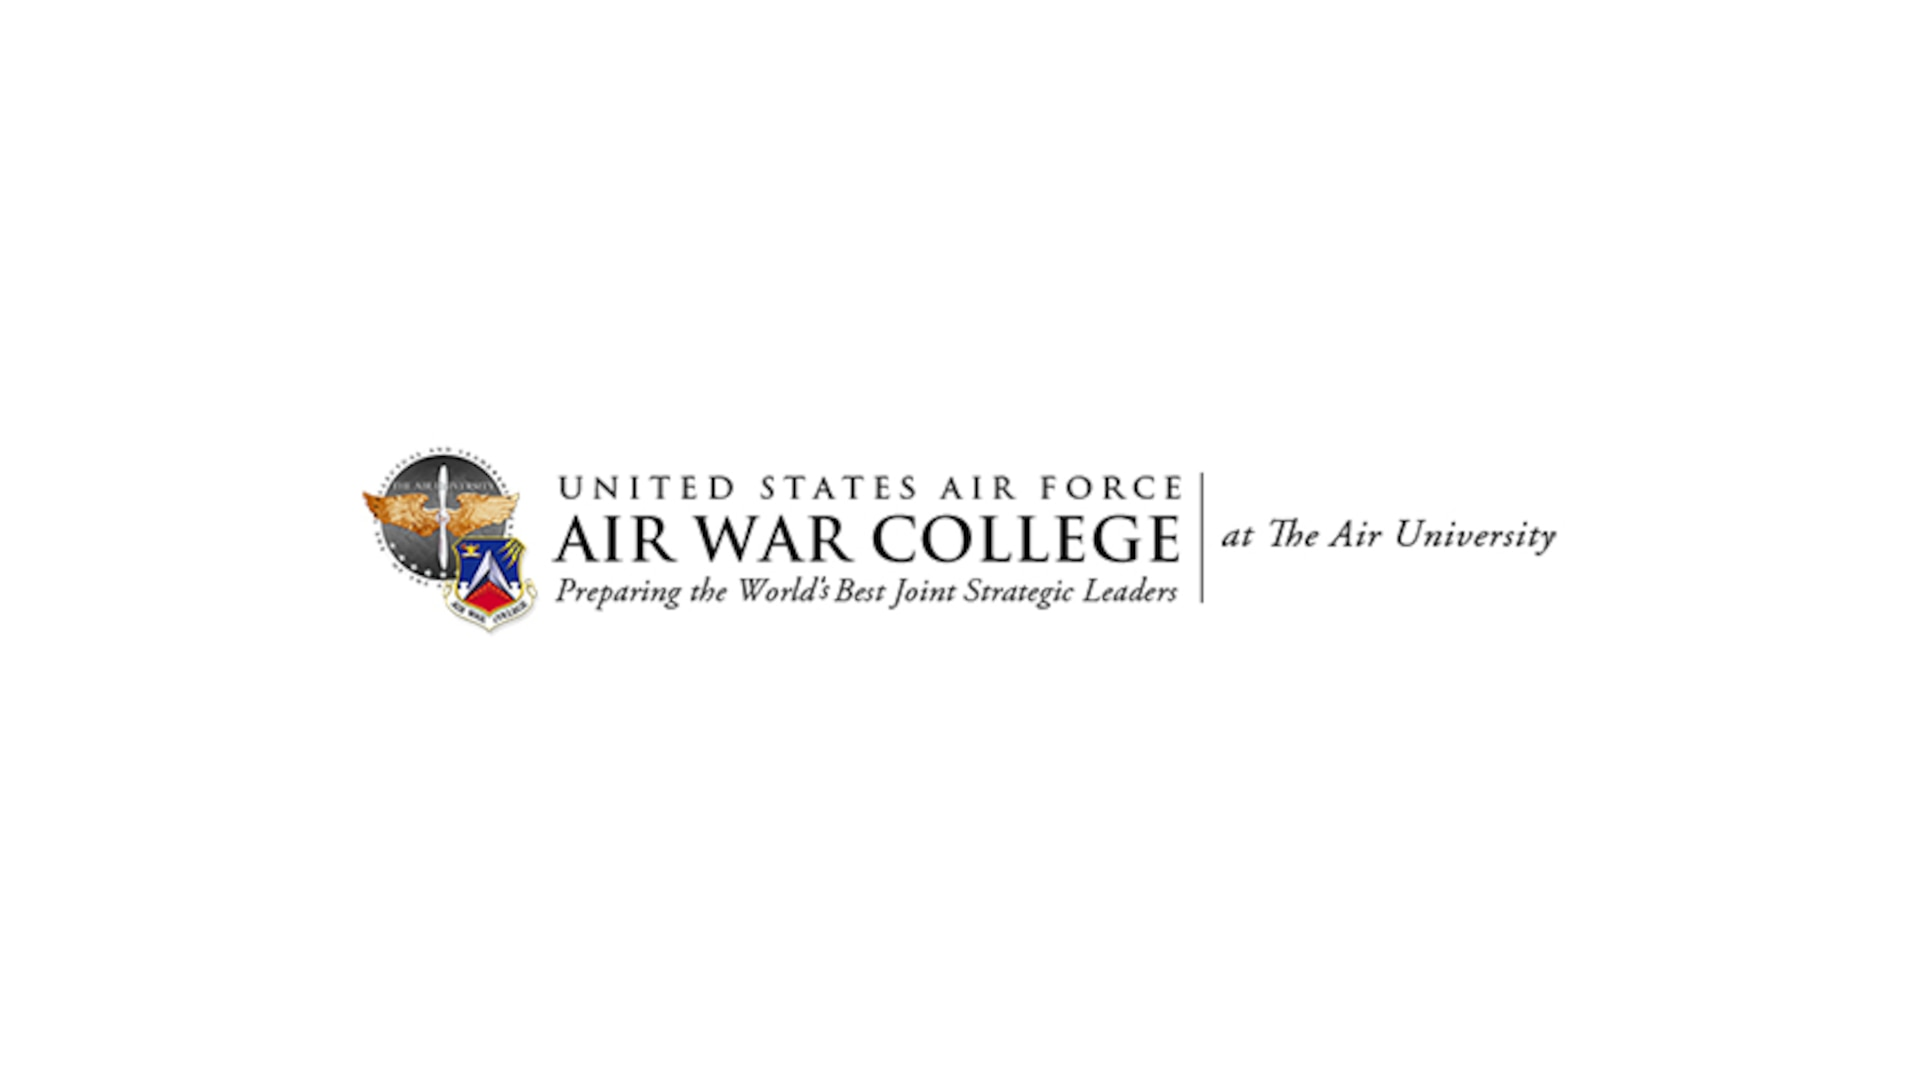 The United States Air Force Air War College is the senior Air Force professional military school.